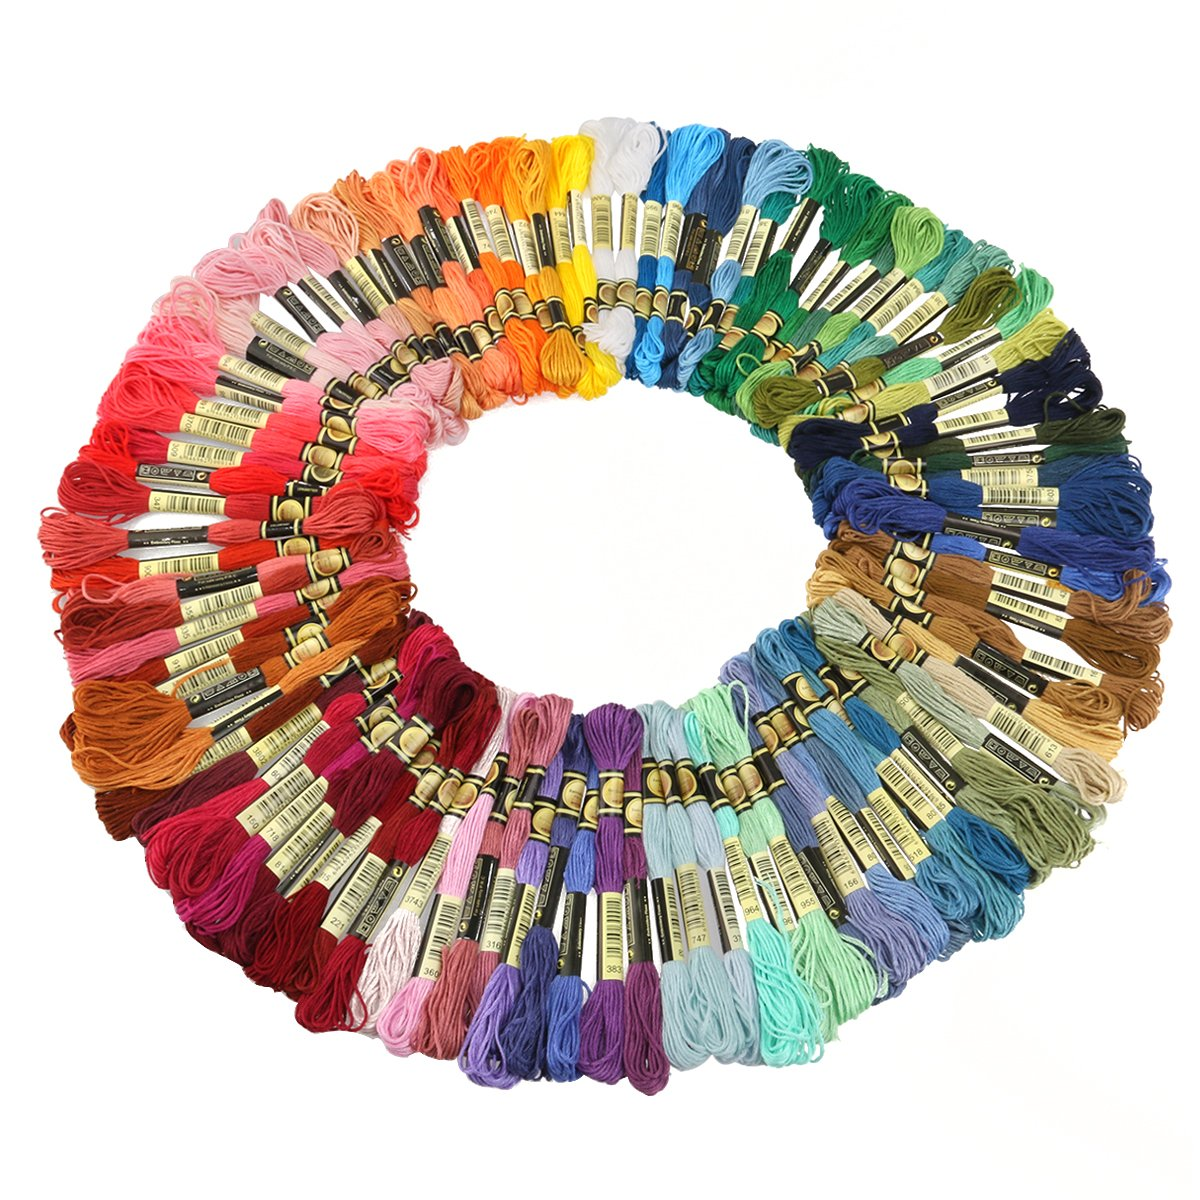 100pcs Embroidery Thread Rainbow Color Beginner high-Mass Soft Sewing Thread Cross-Stitch Embroidery Set Embroidery Floss